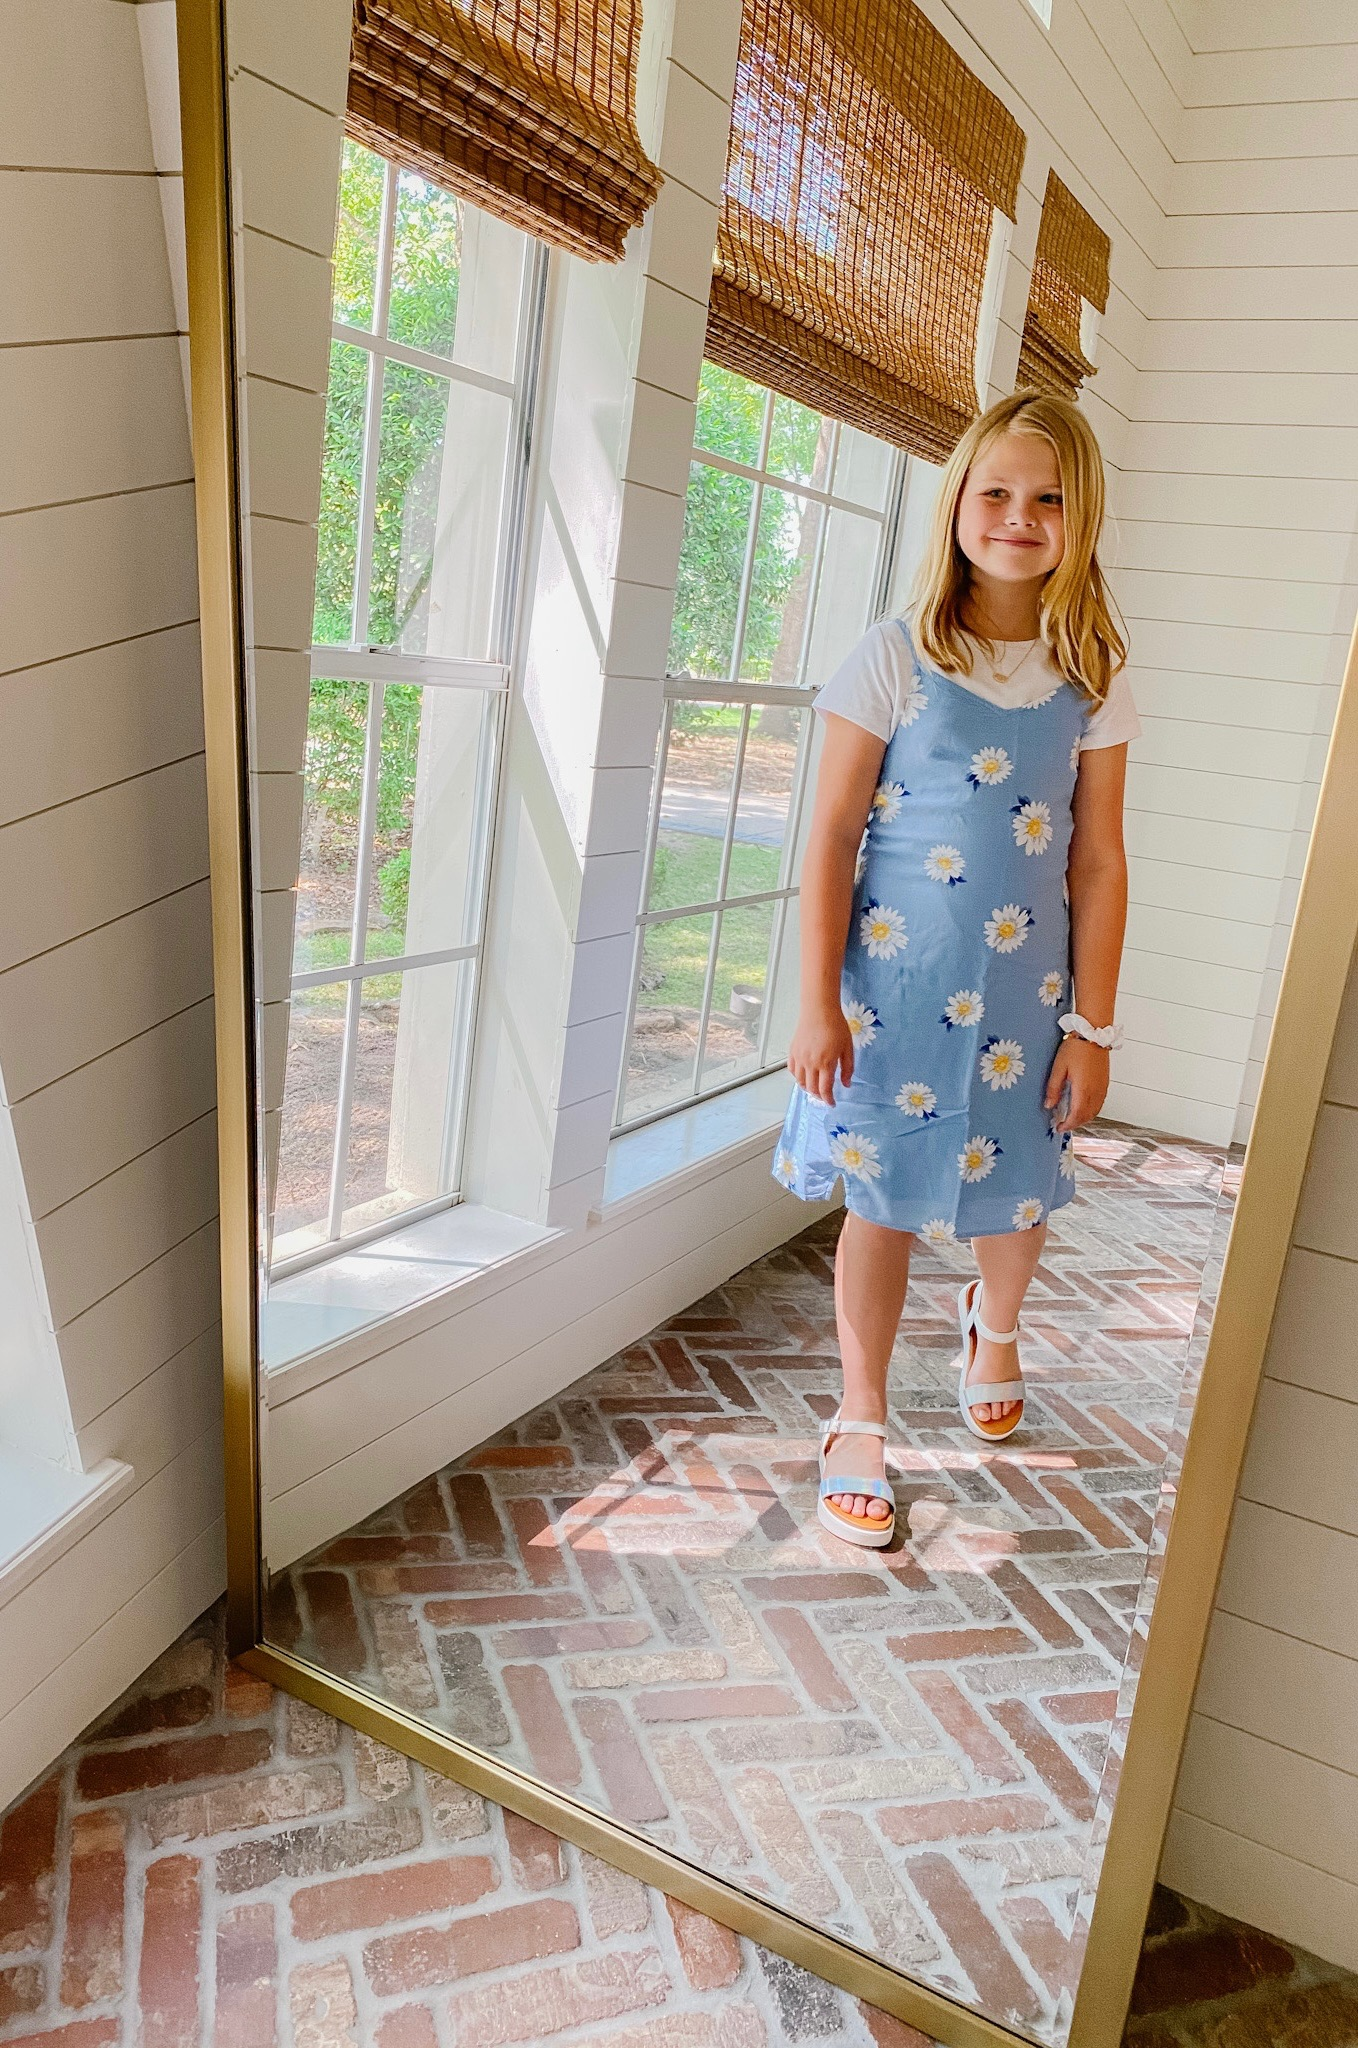 Spring Clothing by popular Houston fashion blog, The House of Fancy: image of a girl wearing a blue and white floral print dress, white t-shirt and metallic sandals.